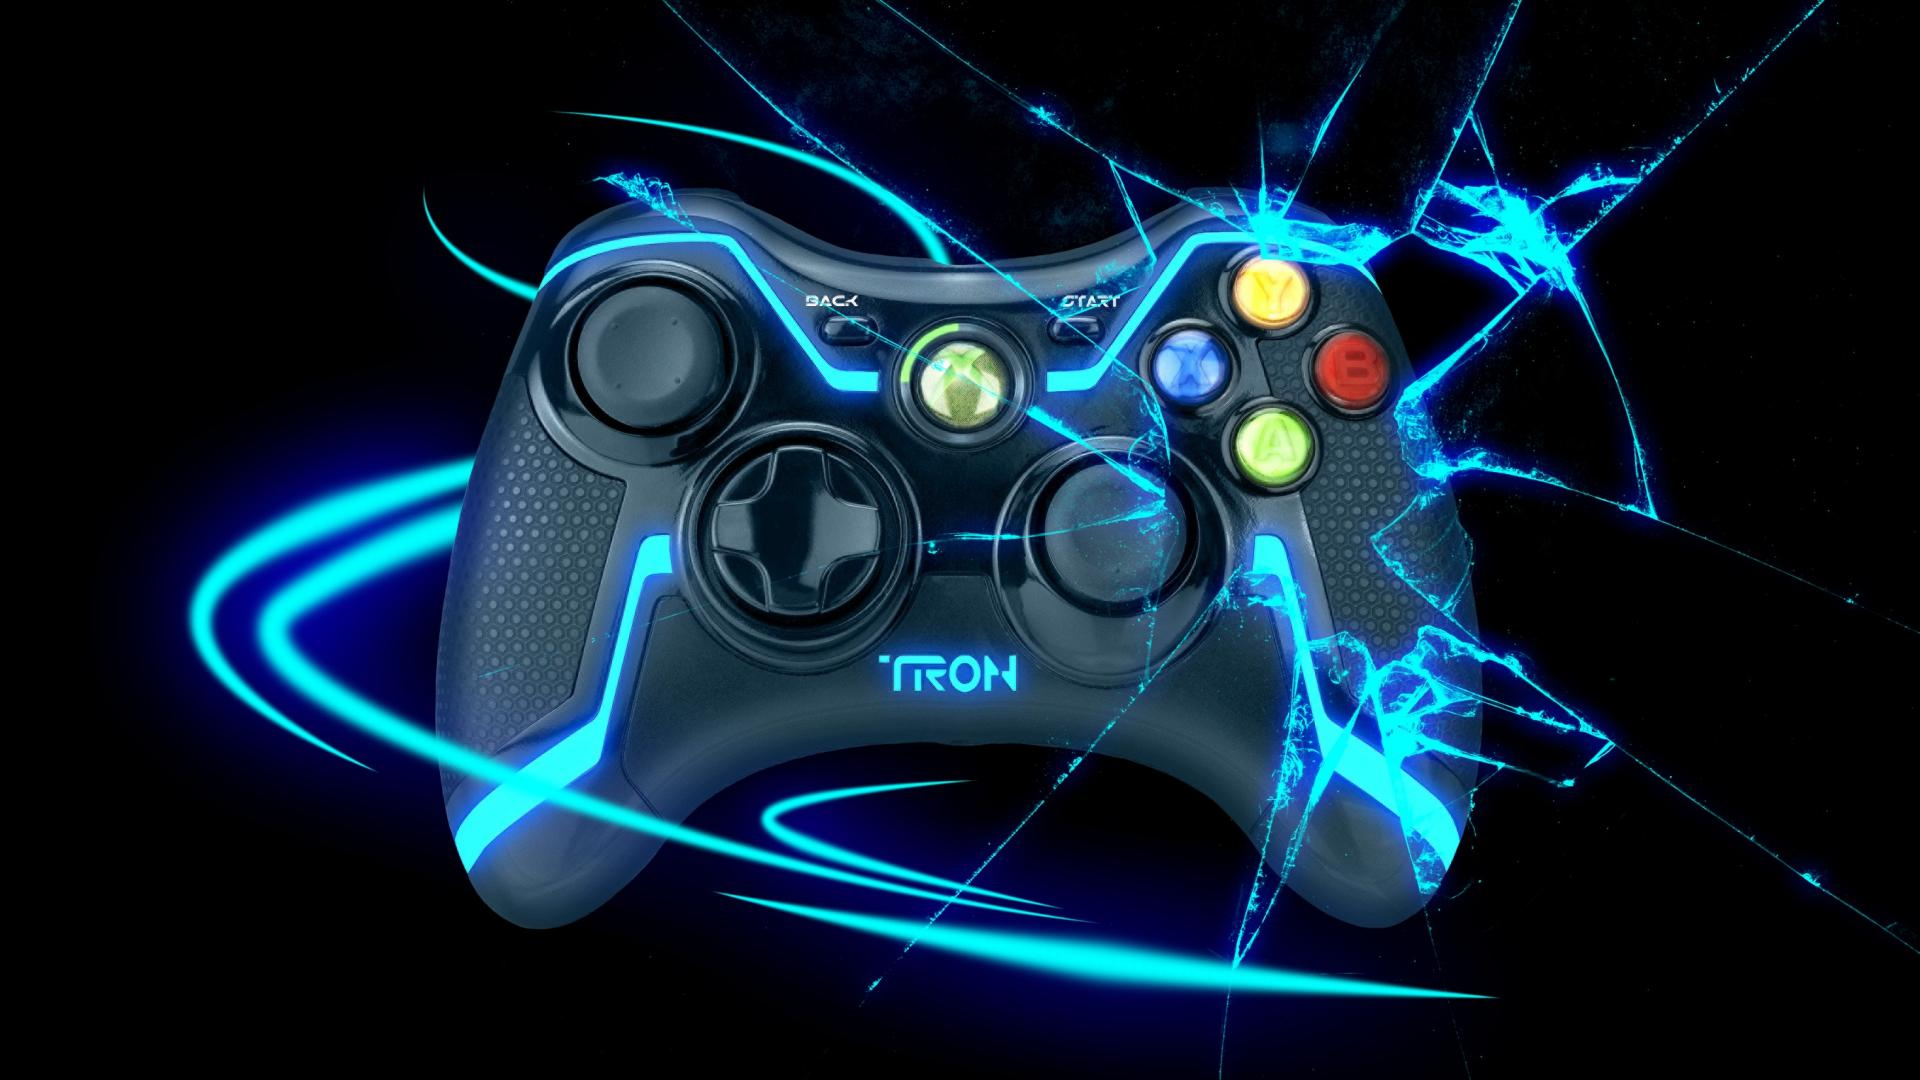 Gamer Thug Controller Hd Wallpapers: Game Wallpaper Xbox 360